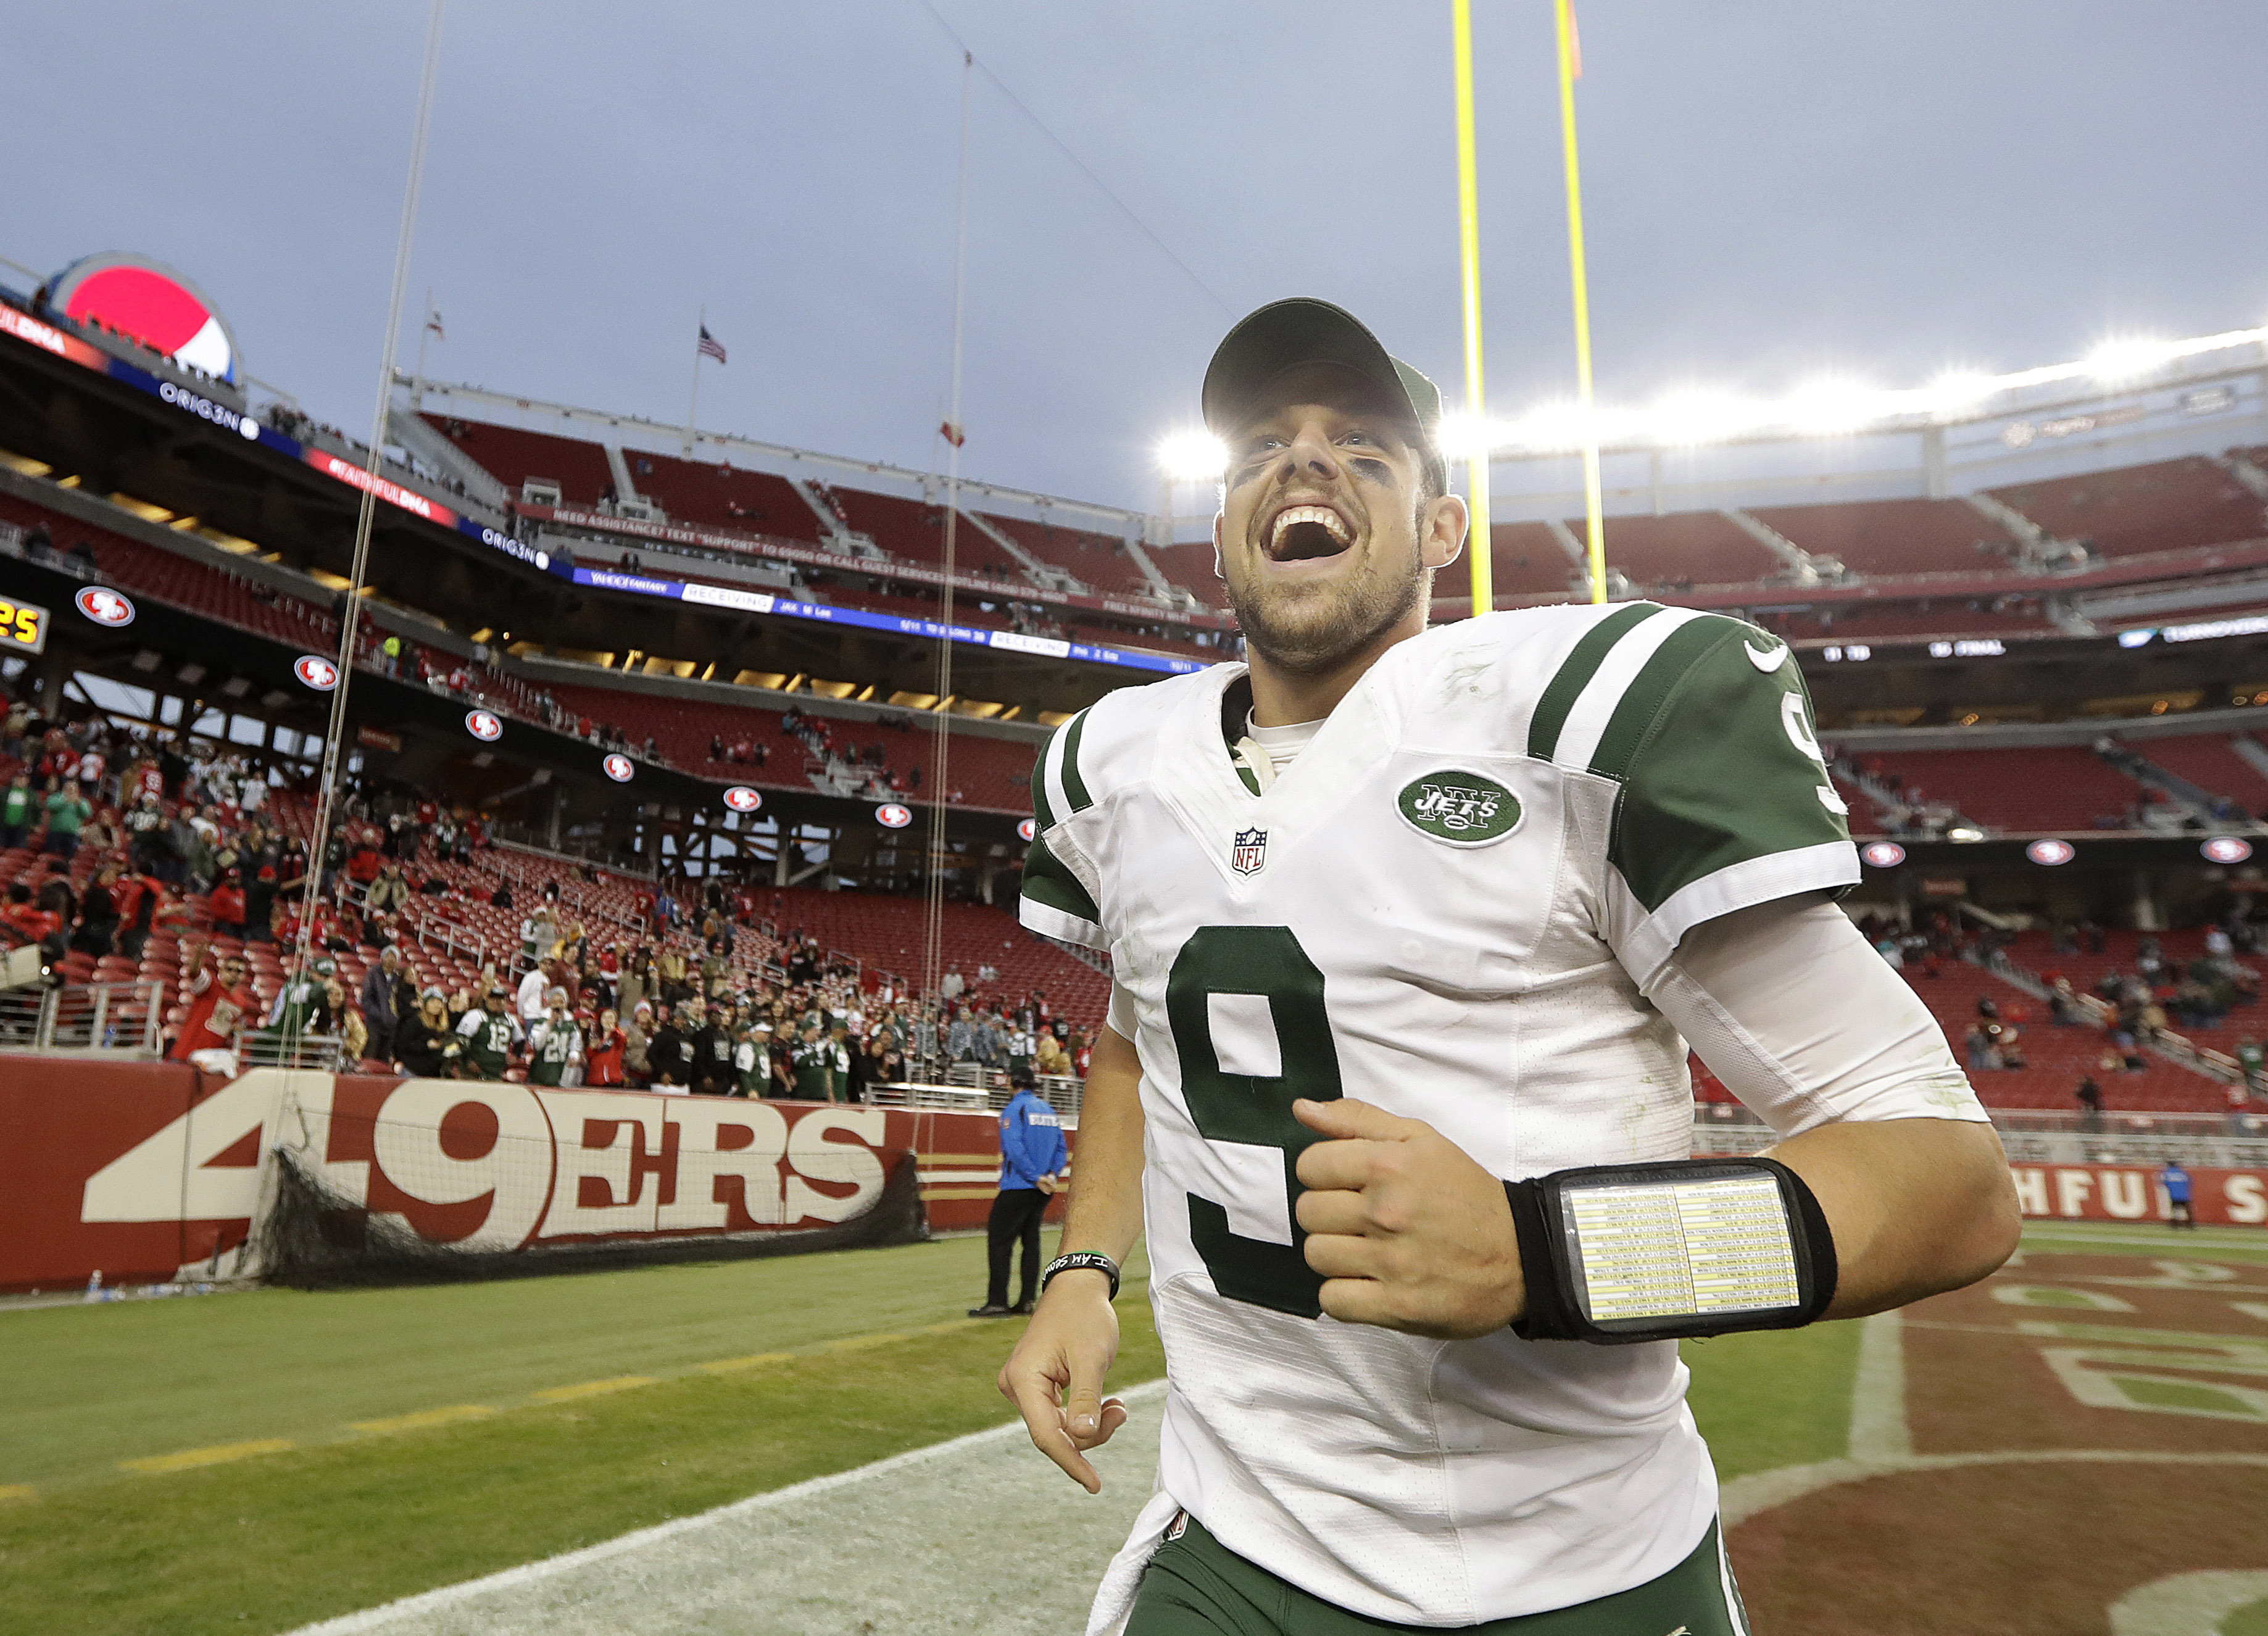 New York Jets quarterback Bryce Petty (9) smiles as he runs off the field after the Jets defeated the San Francisco 49ers 23-17 in overtime of an NFL football game in Santa Clara, Calif., Sunday, Dec. 11, 2016. (AP Photo/Marcio Jose Sanchez)